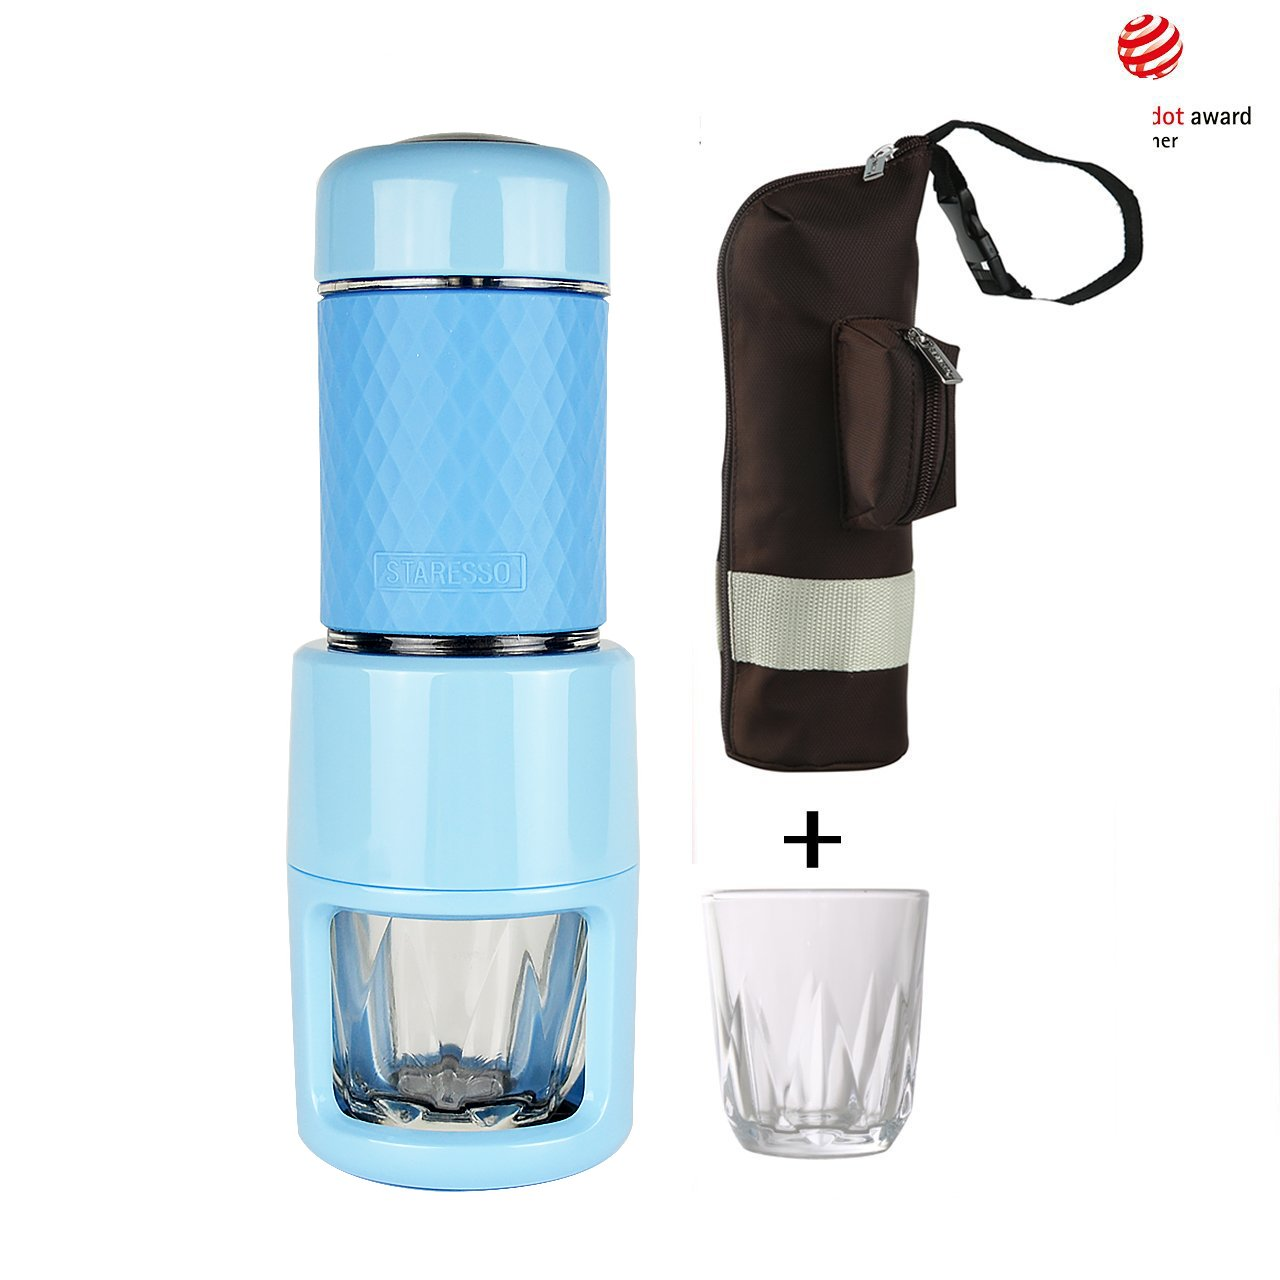 STARESSO Coffee Maker with Espresso, Cappuccino, Quick Cold Brew All in One (Sky Blue) THUSHK373